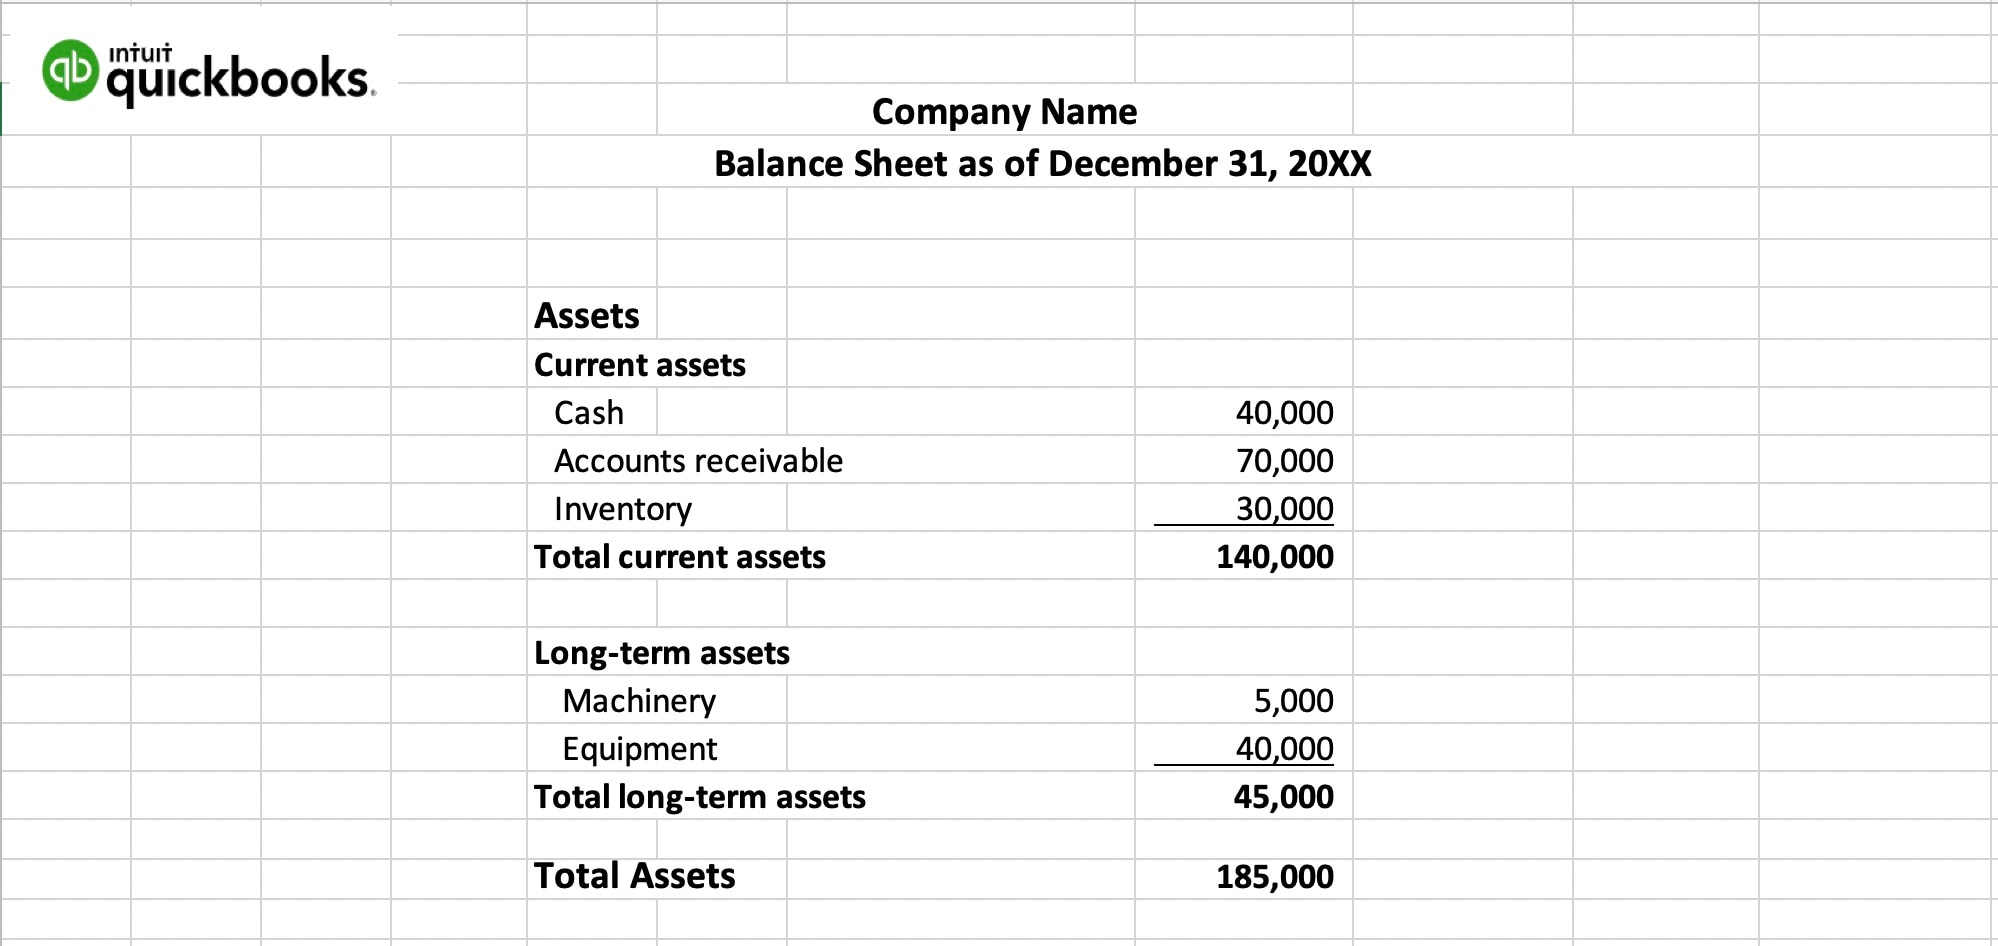 A Guide To Balance Sheets With Template